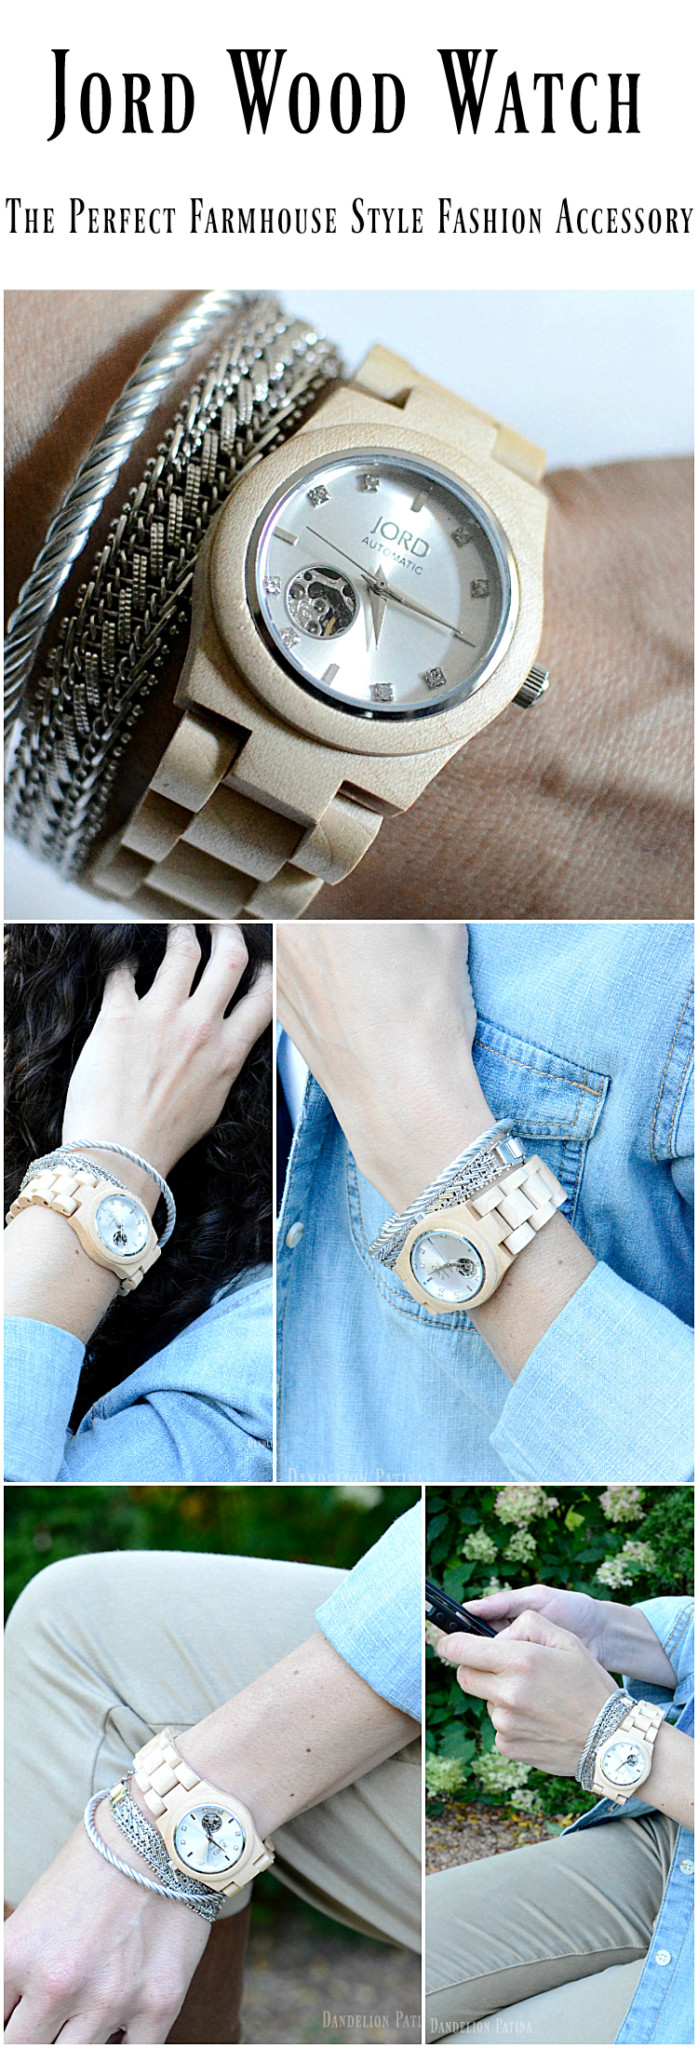 Jord wood watch perfect farmhouse style fashion accessory